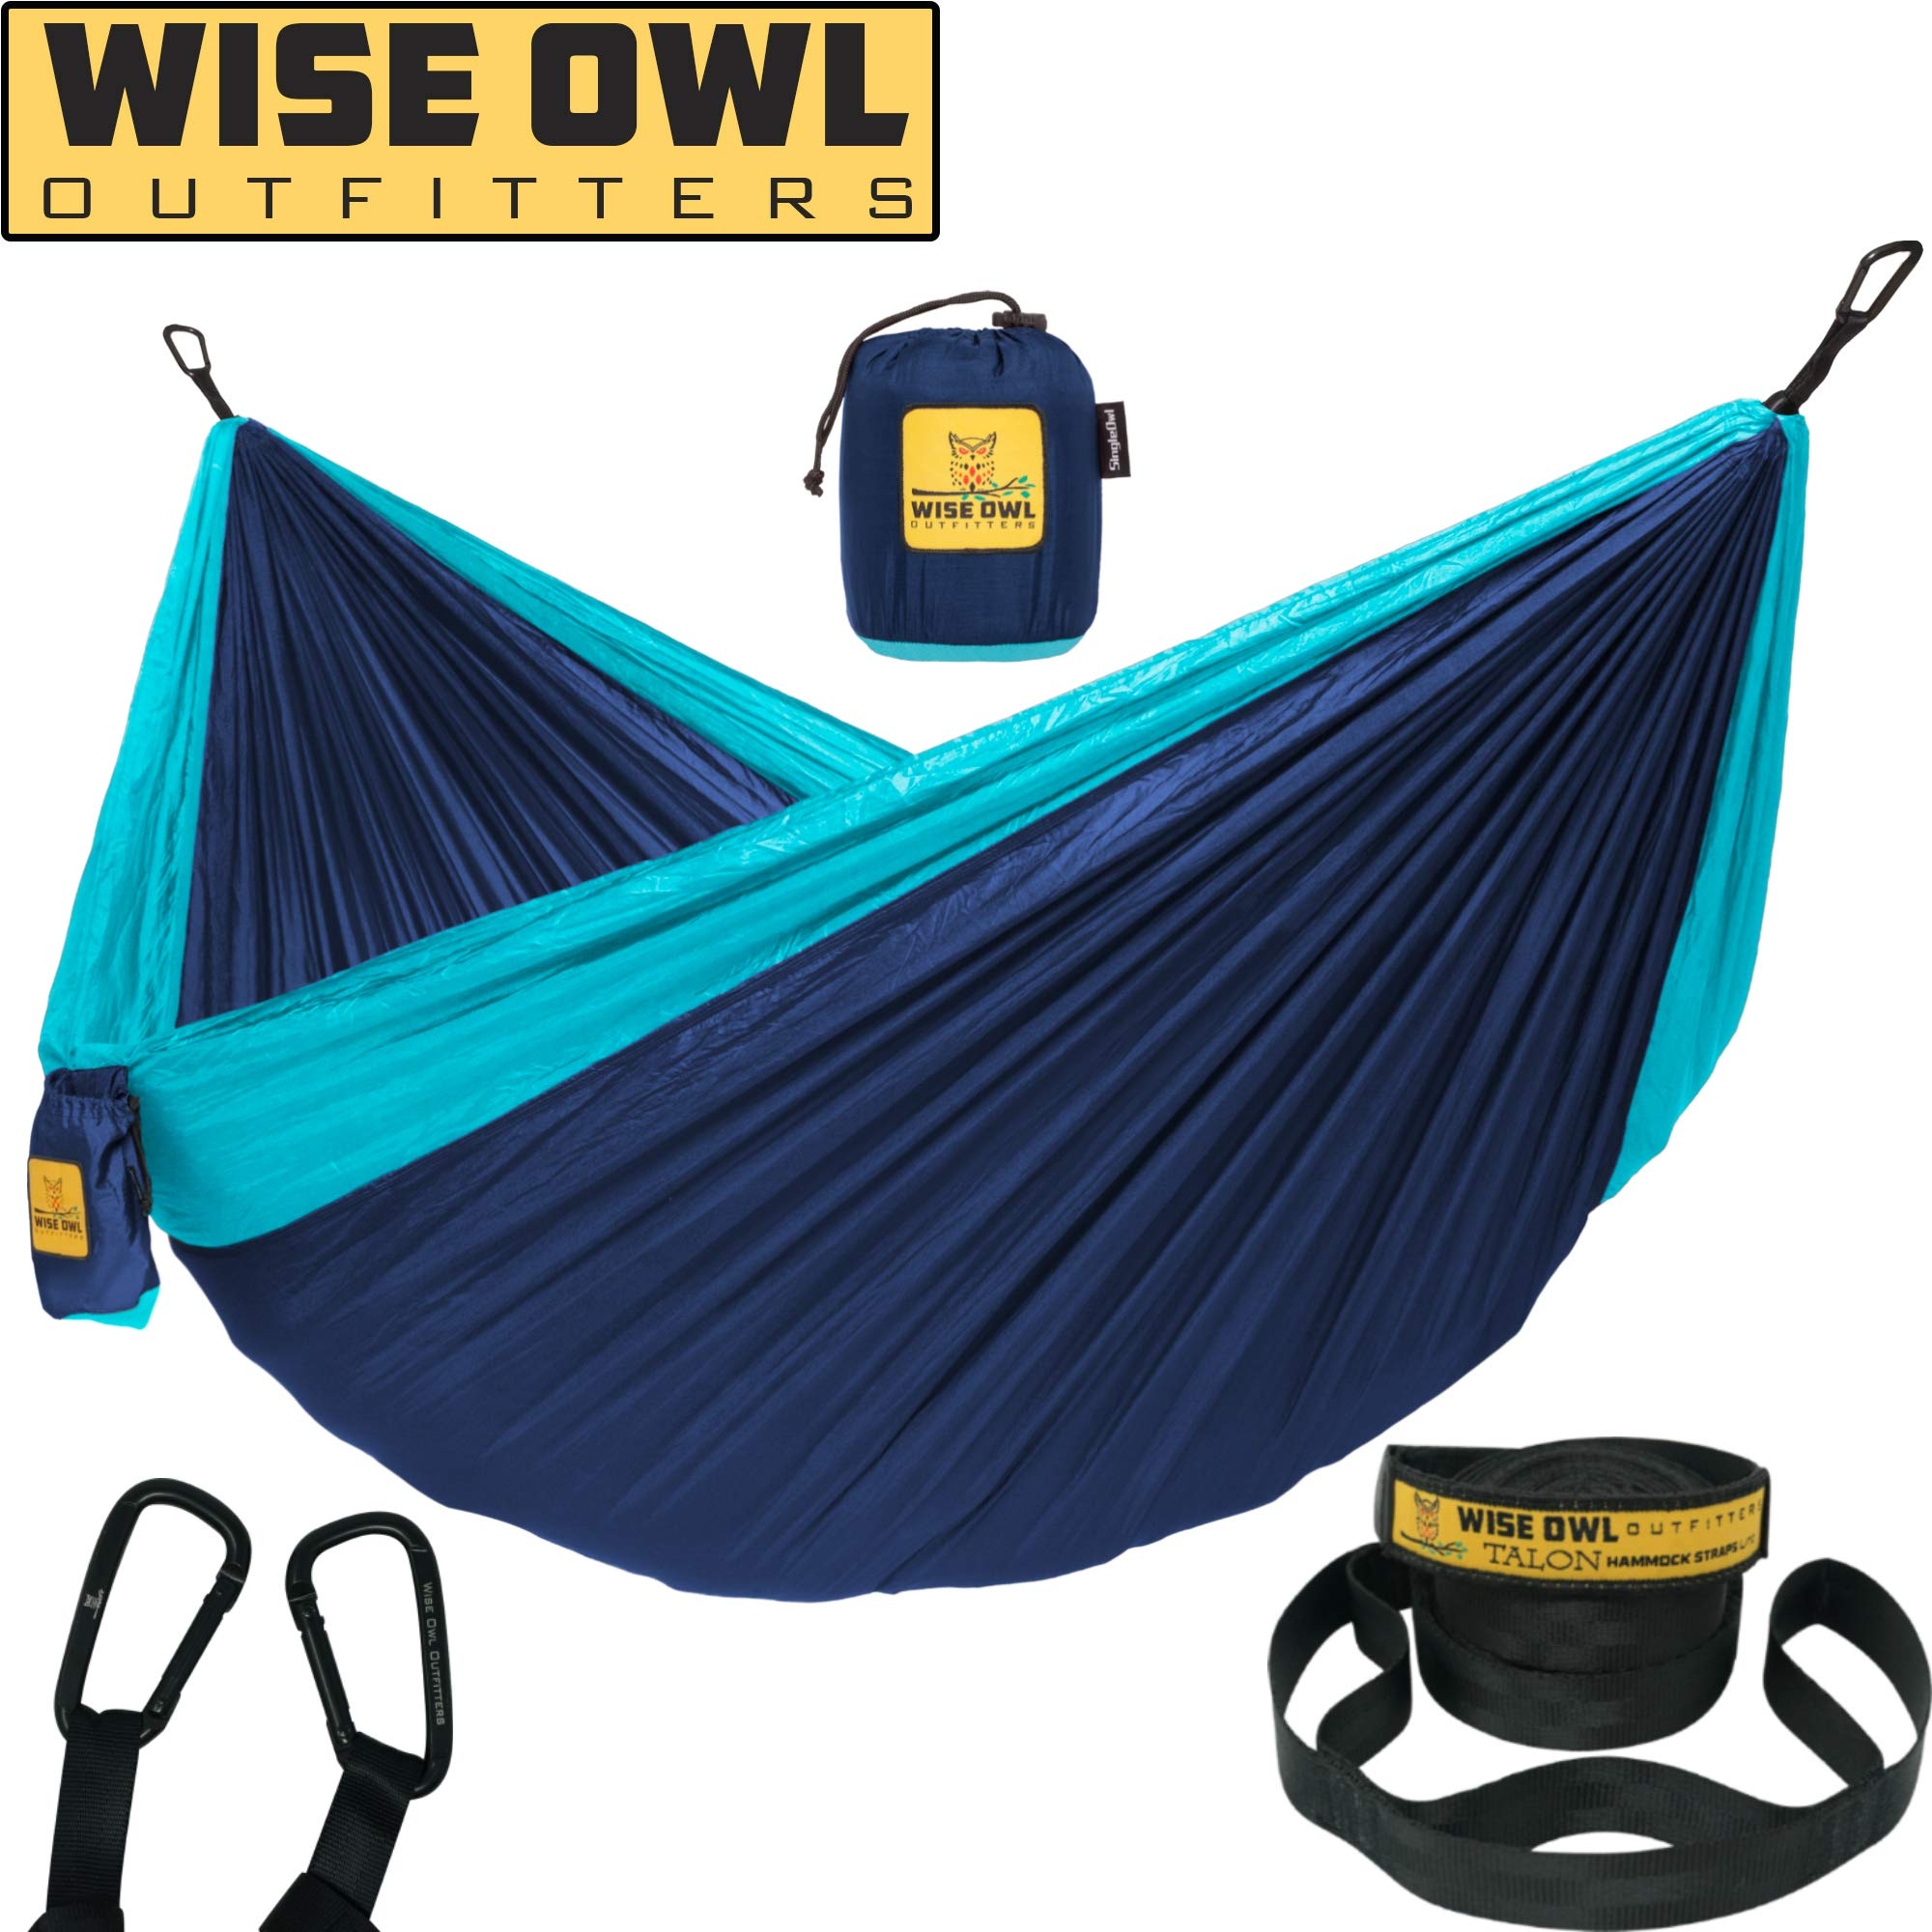 Wise Owl Outfitters Hammock Camping Double & Single with Tree Straps - USA Based Hammocks Brand Gear, Indoor Outdoor Backpacking Survival & Travel, Portable SO NvyBlu by Wise Owl Outfitters